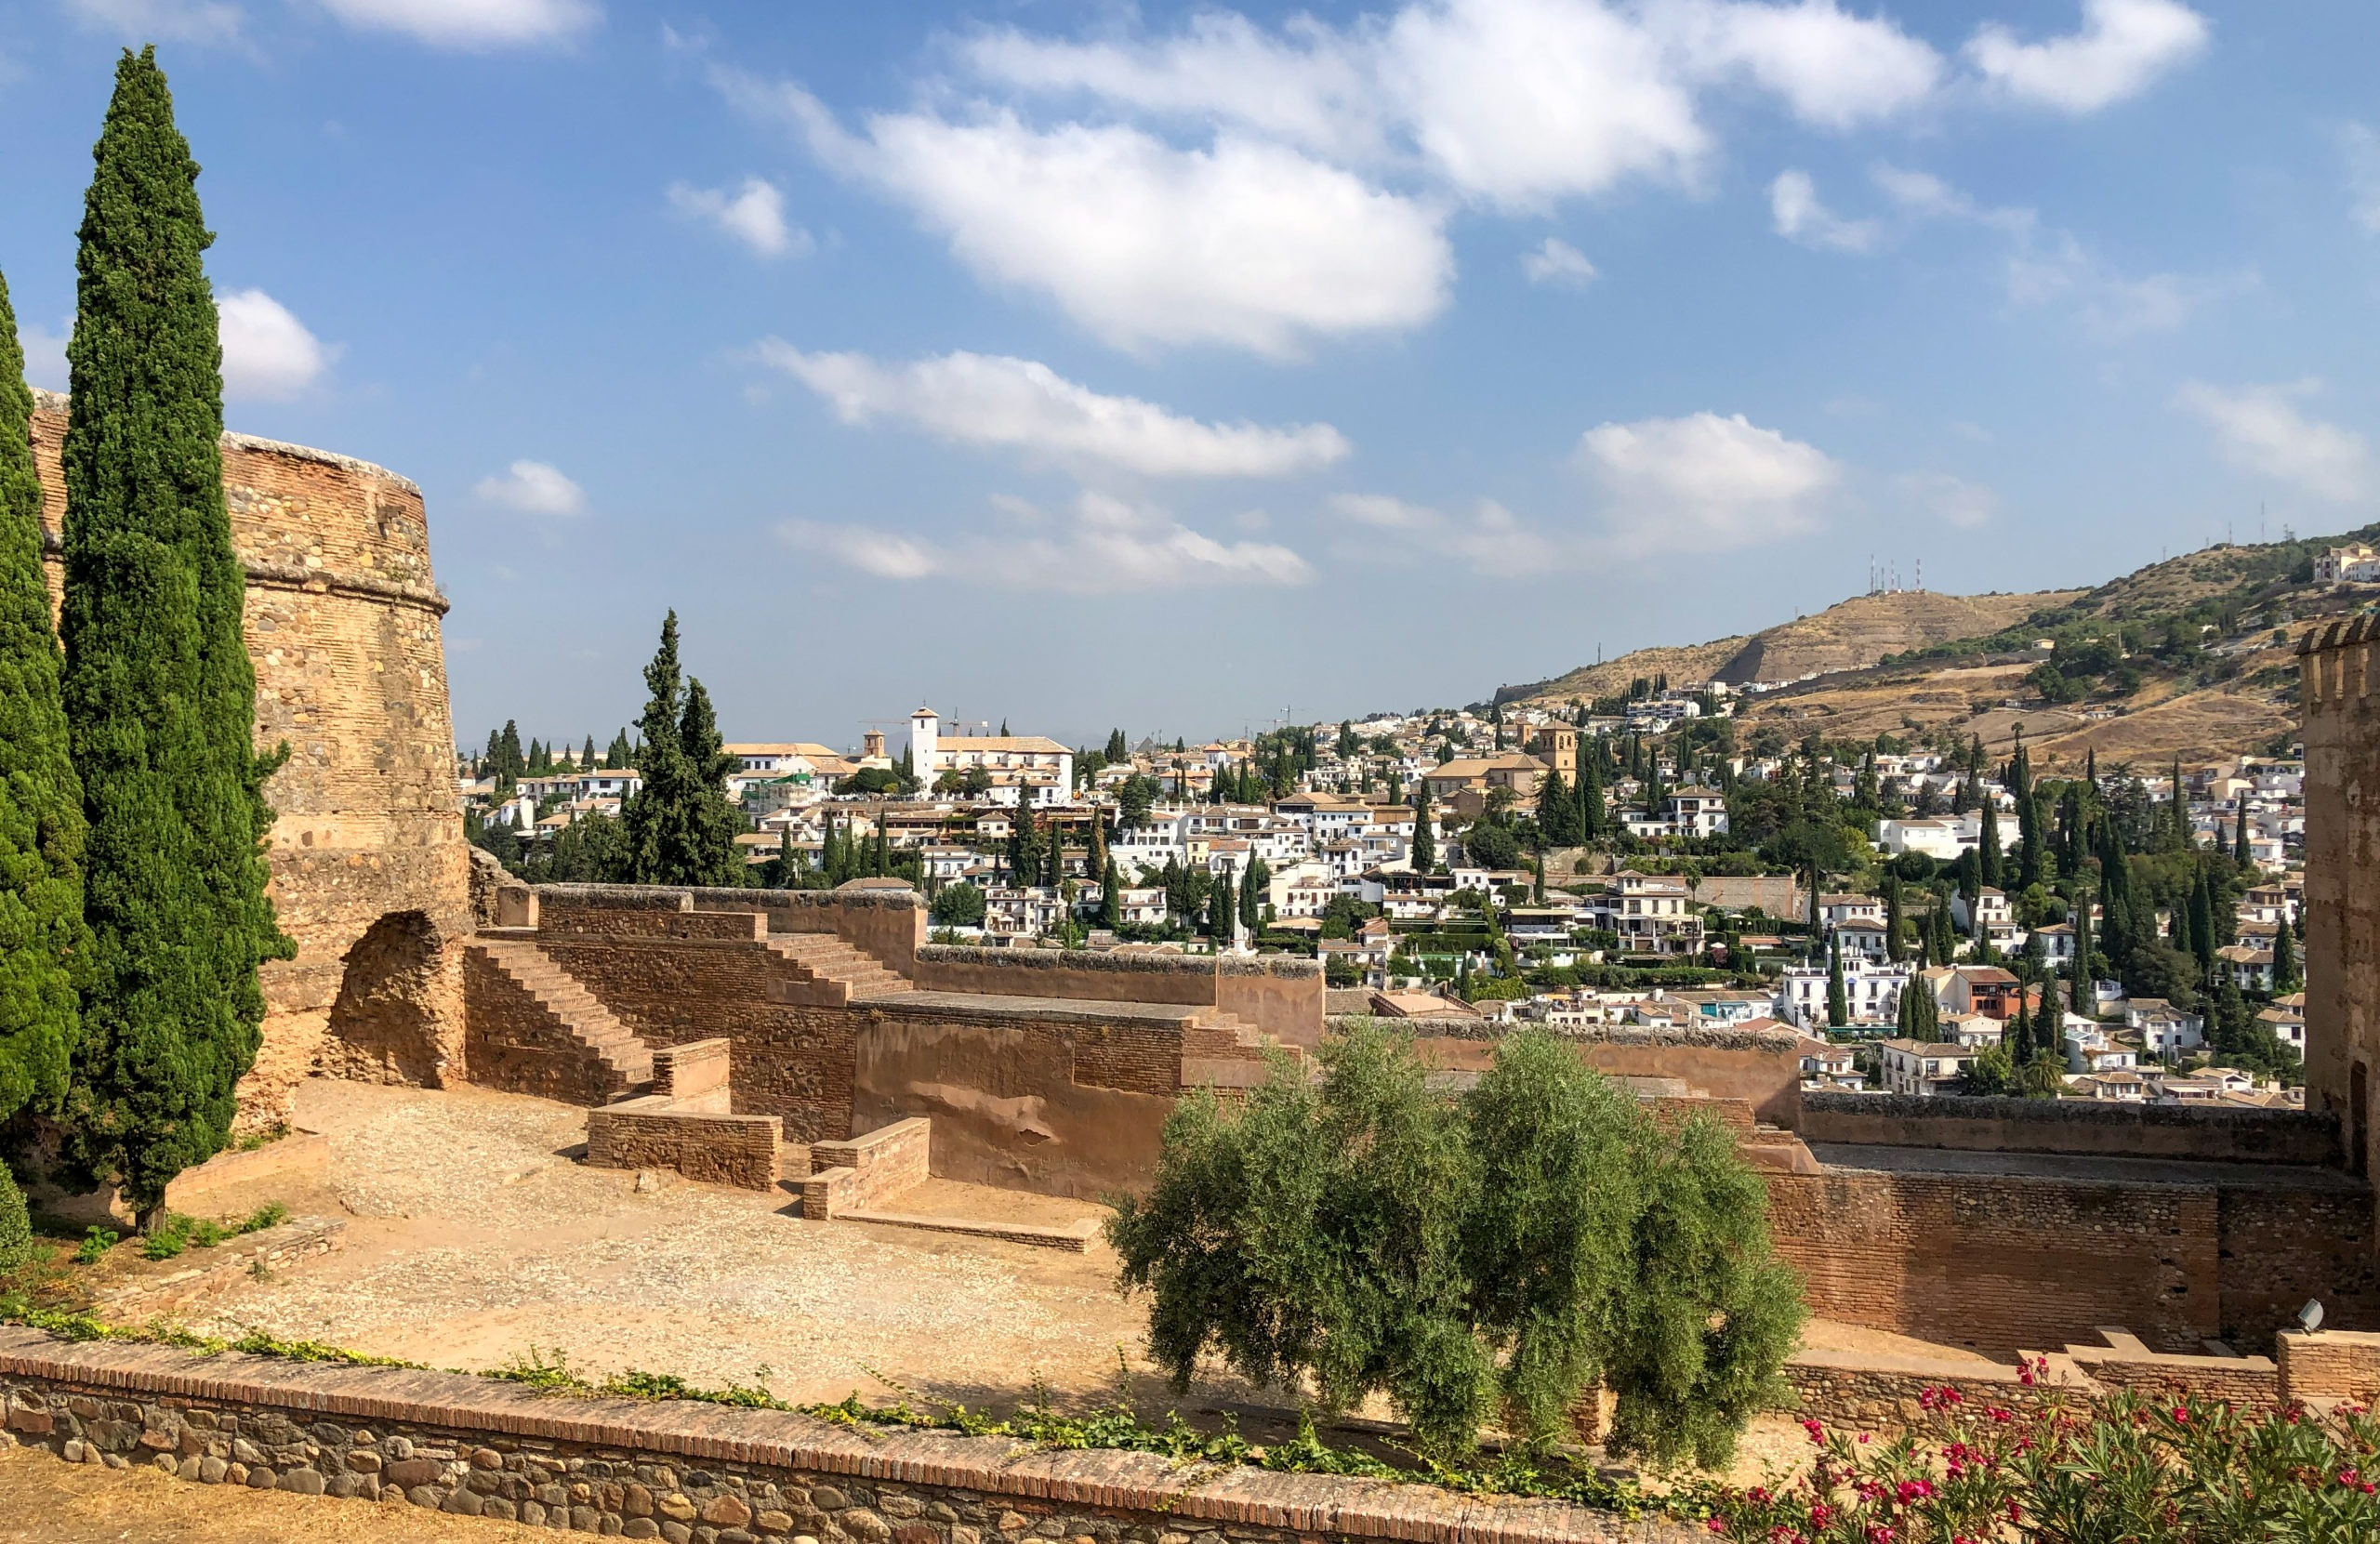 the-alhambra-is-palace-and-fortress-complex-located-in-granada-andalusia-spain